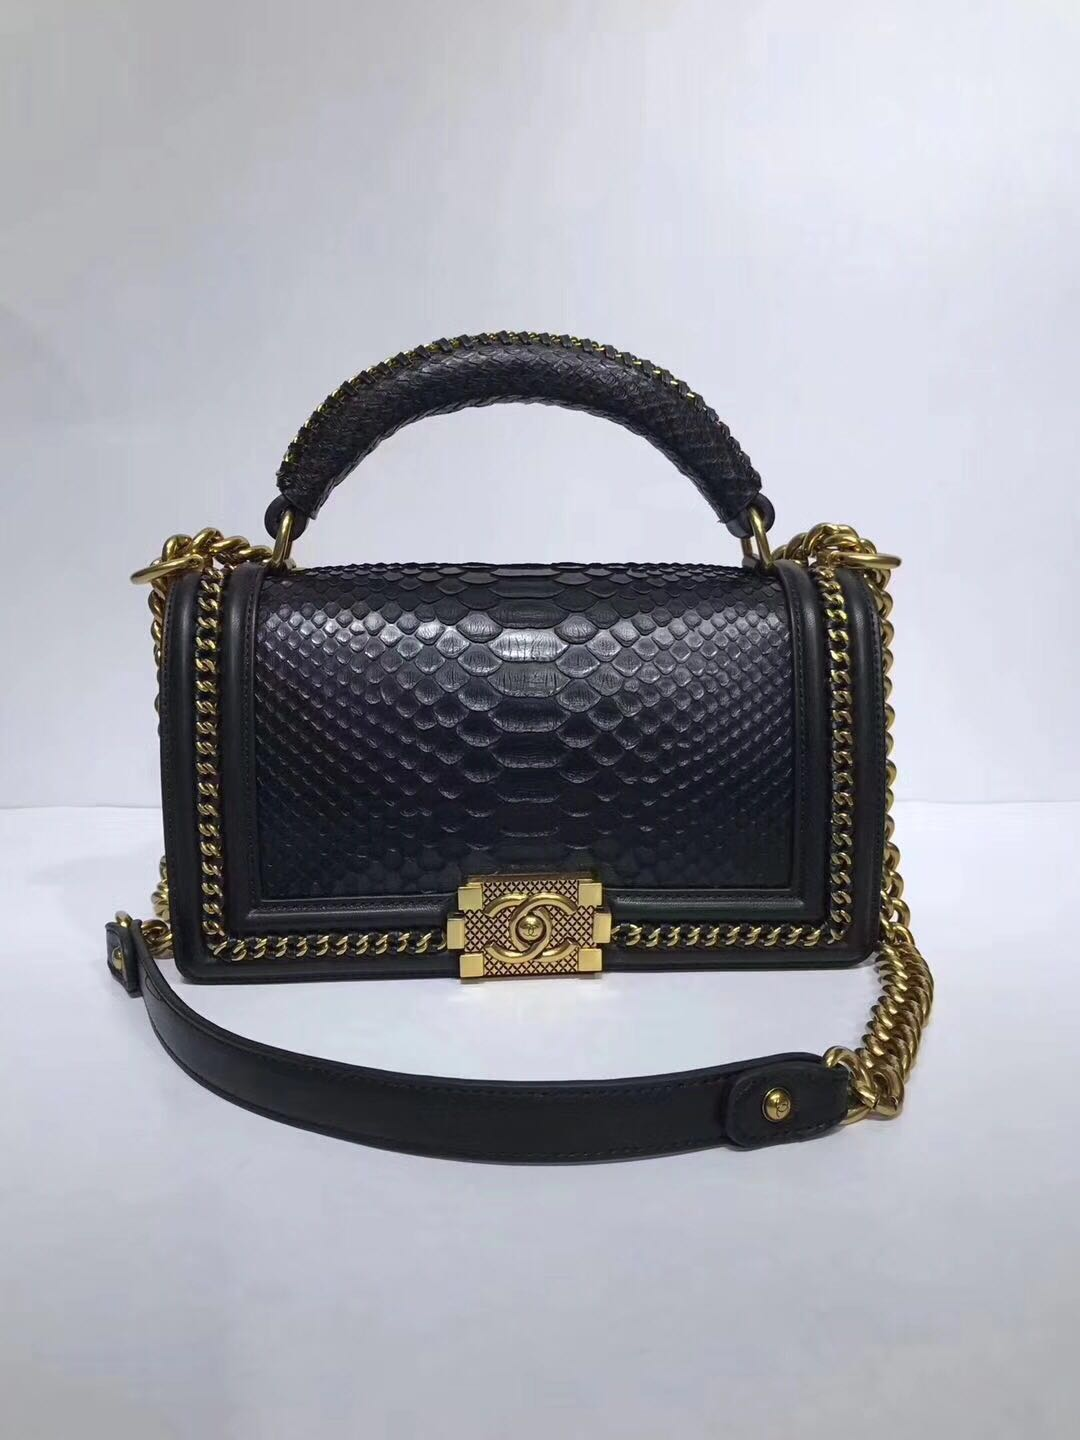 Boy Chanel Flap Shoulder Bag original Snake leather 67086 black